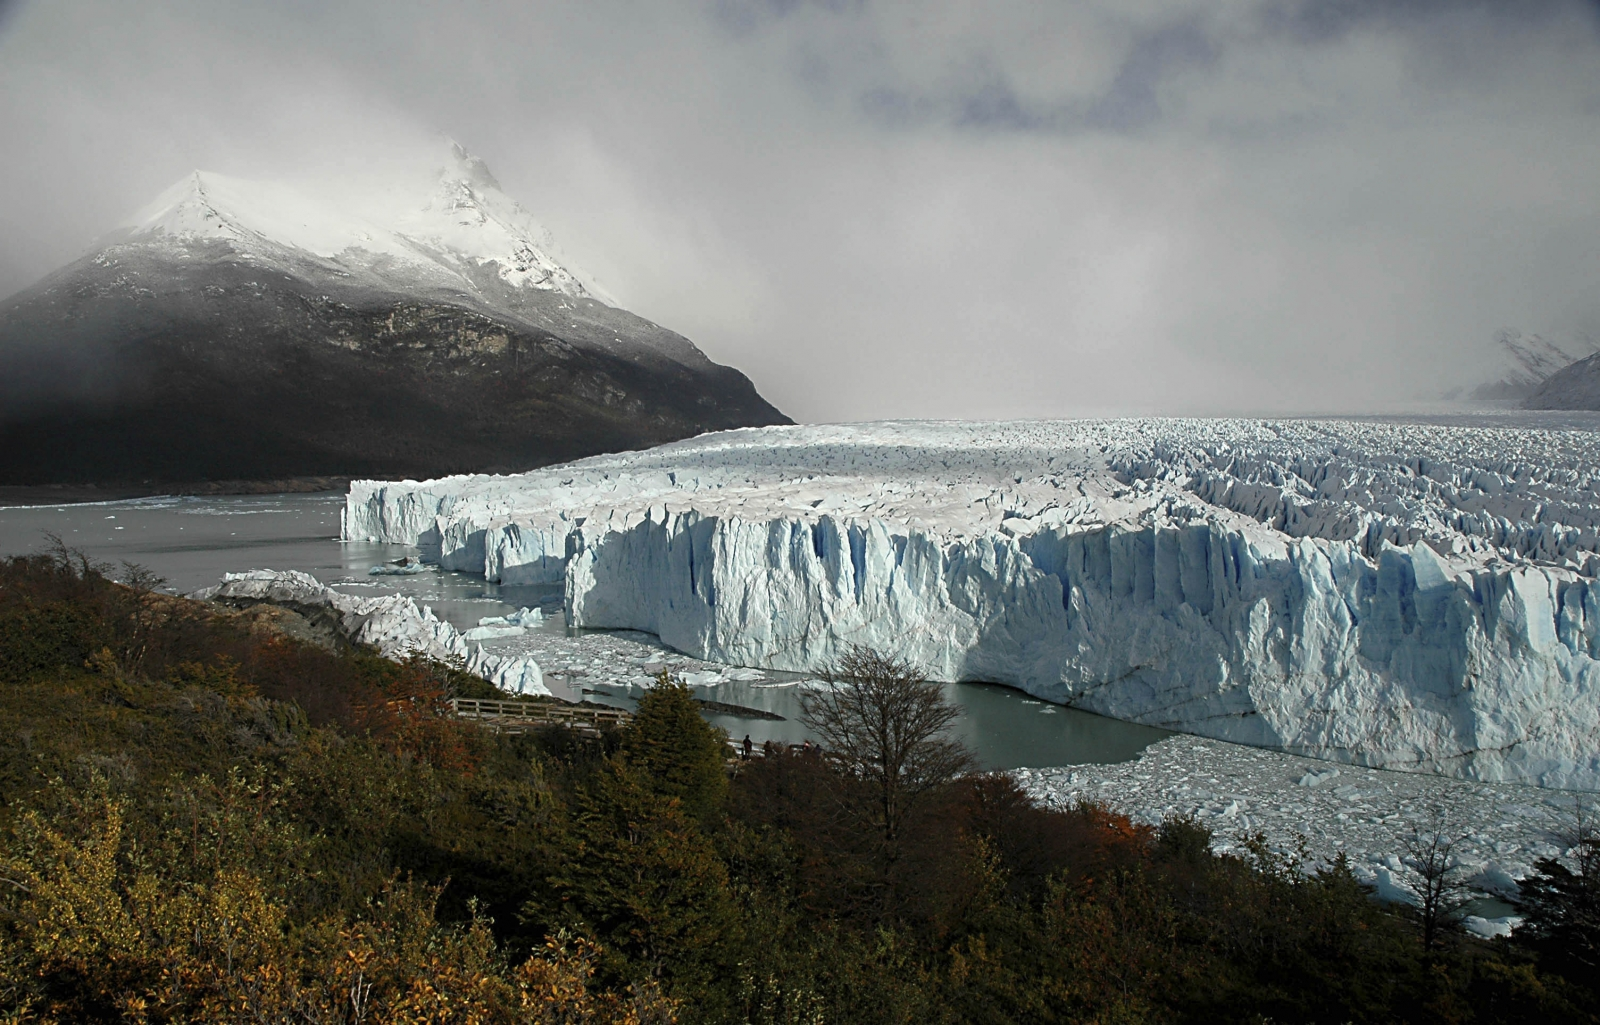 Google Doodle Celebrates the 80th Anniversary of Argentina's Los Glaciares National Park